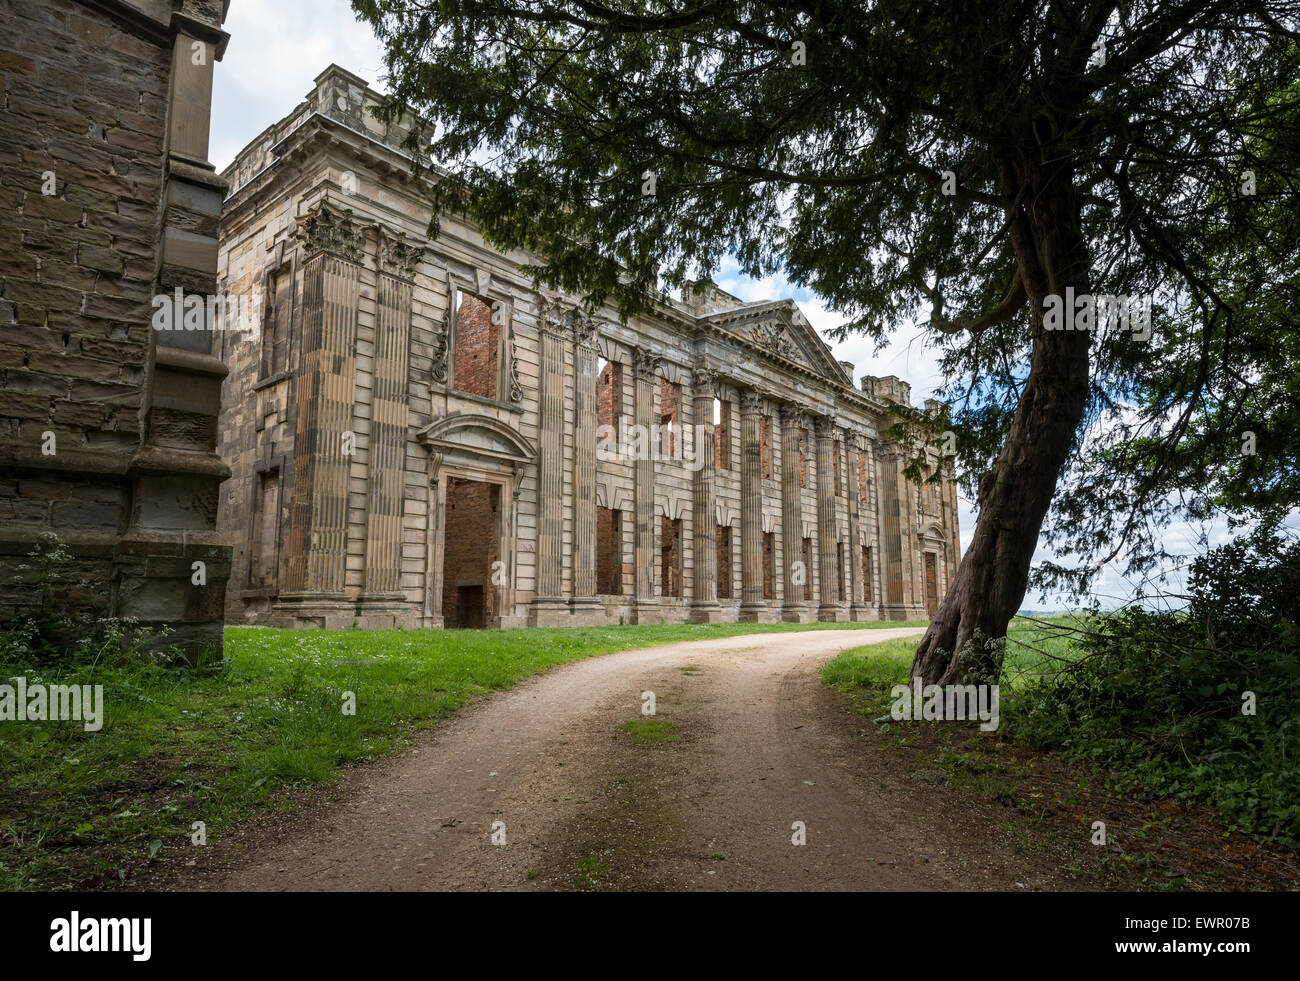 Sutton Scarsdale Hall. The ruin of a Stately home near Chesterfield in Derbyshire, England. - Stock Image